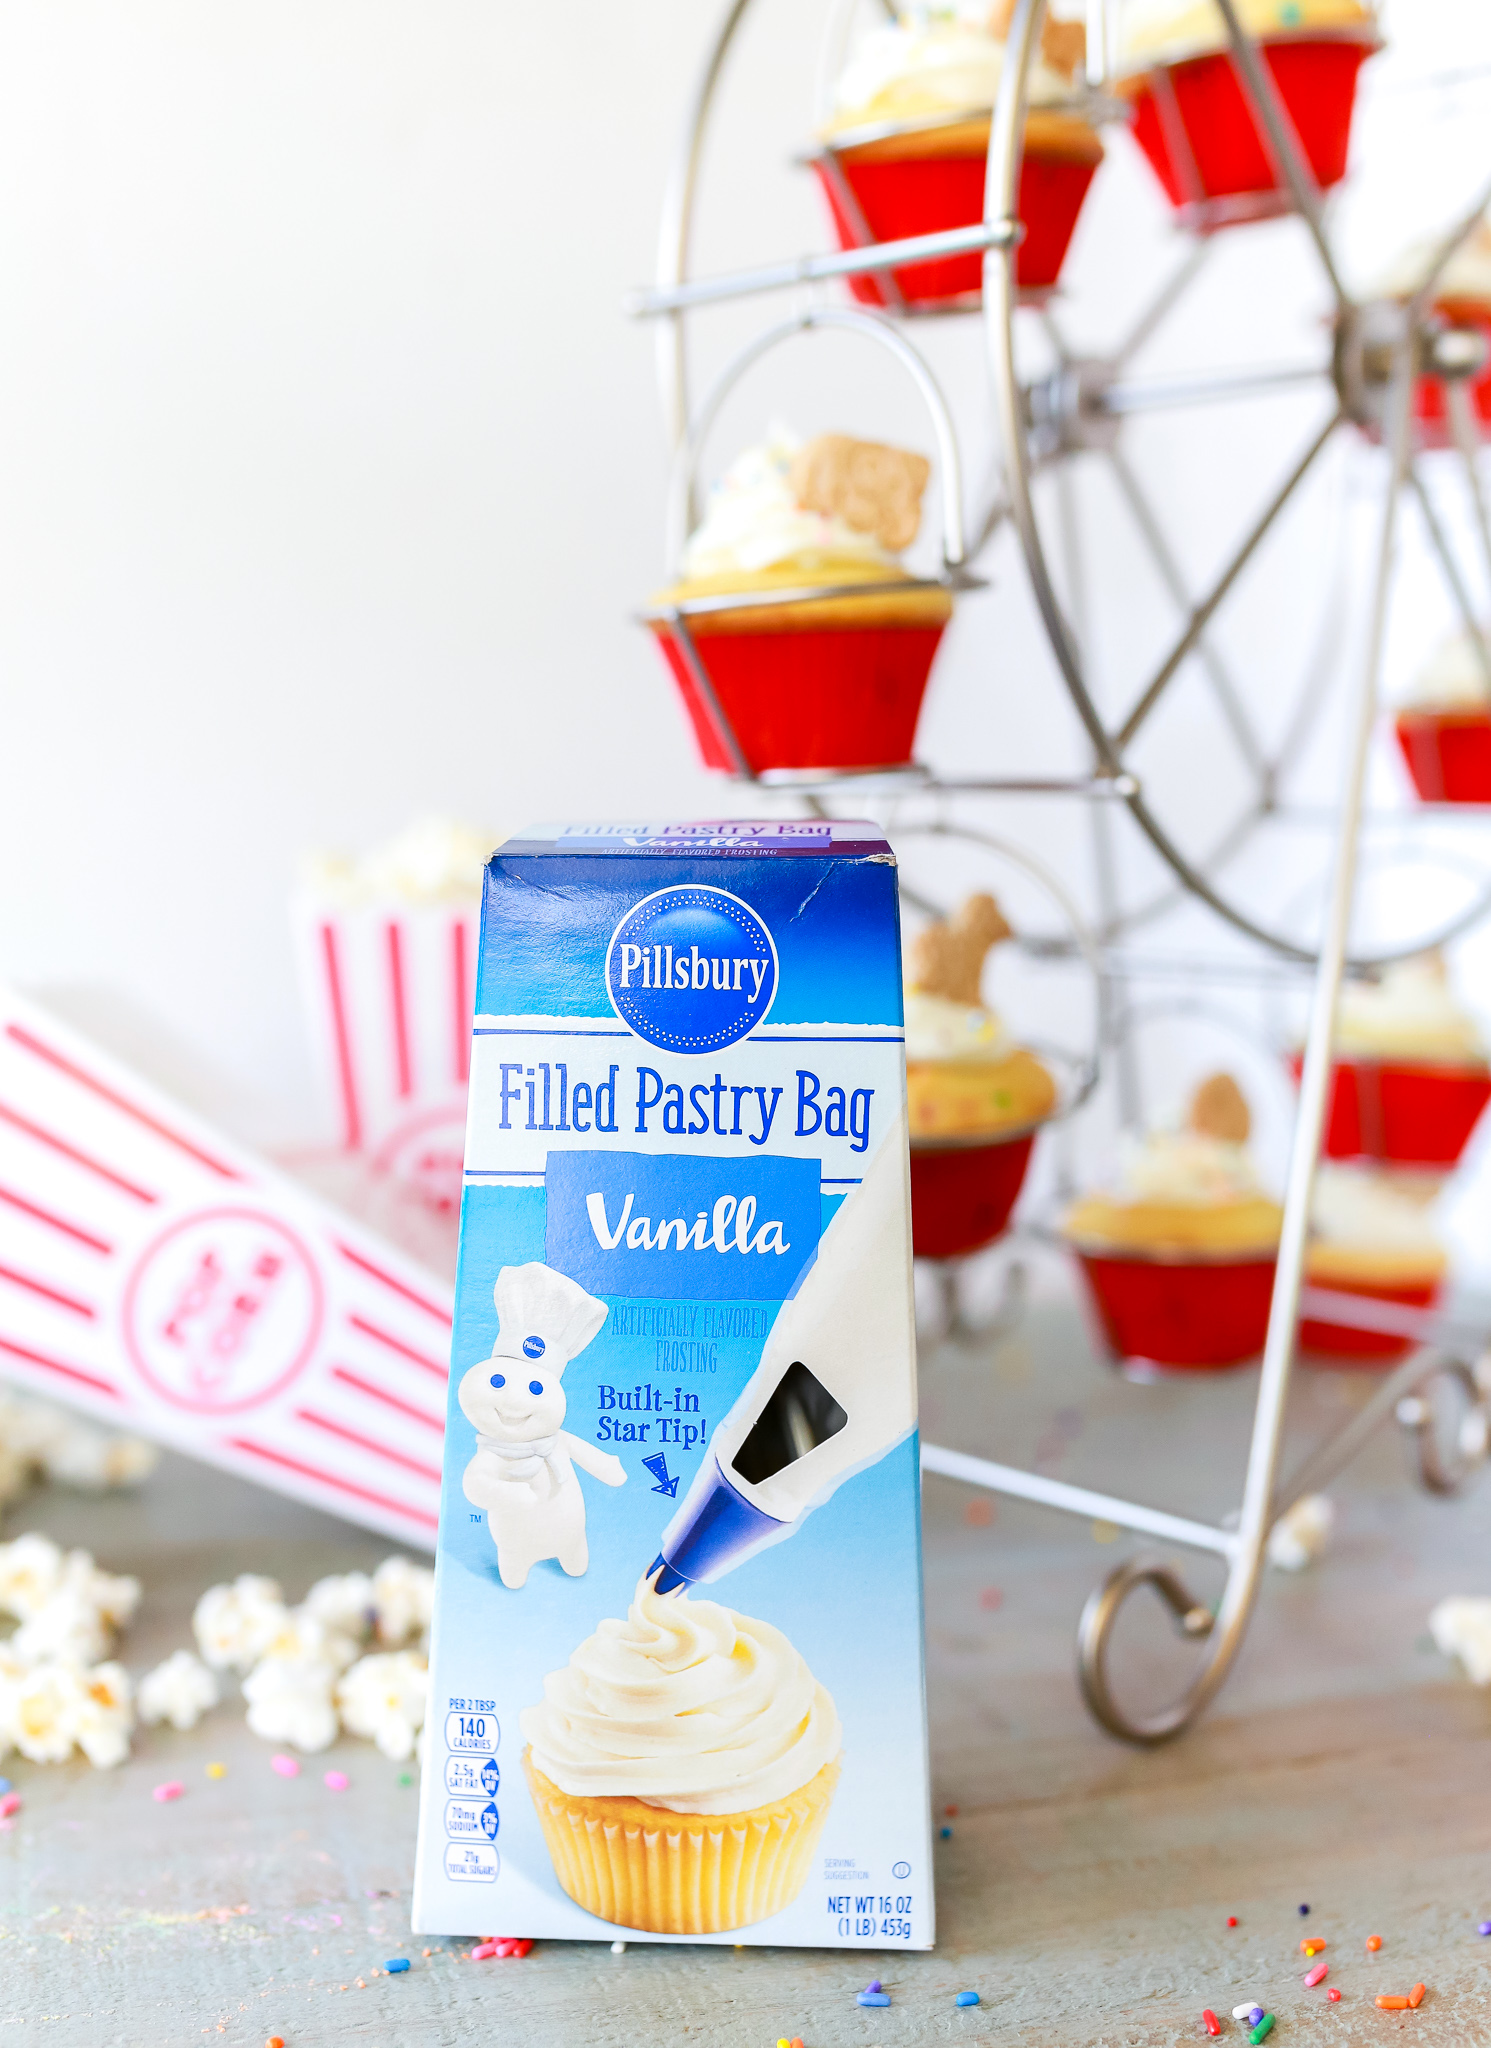 Baking made easy with Pillsbury!